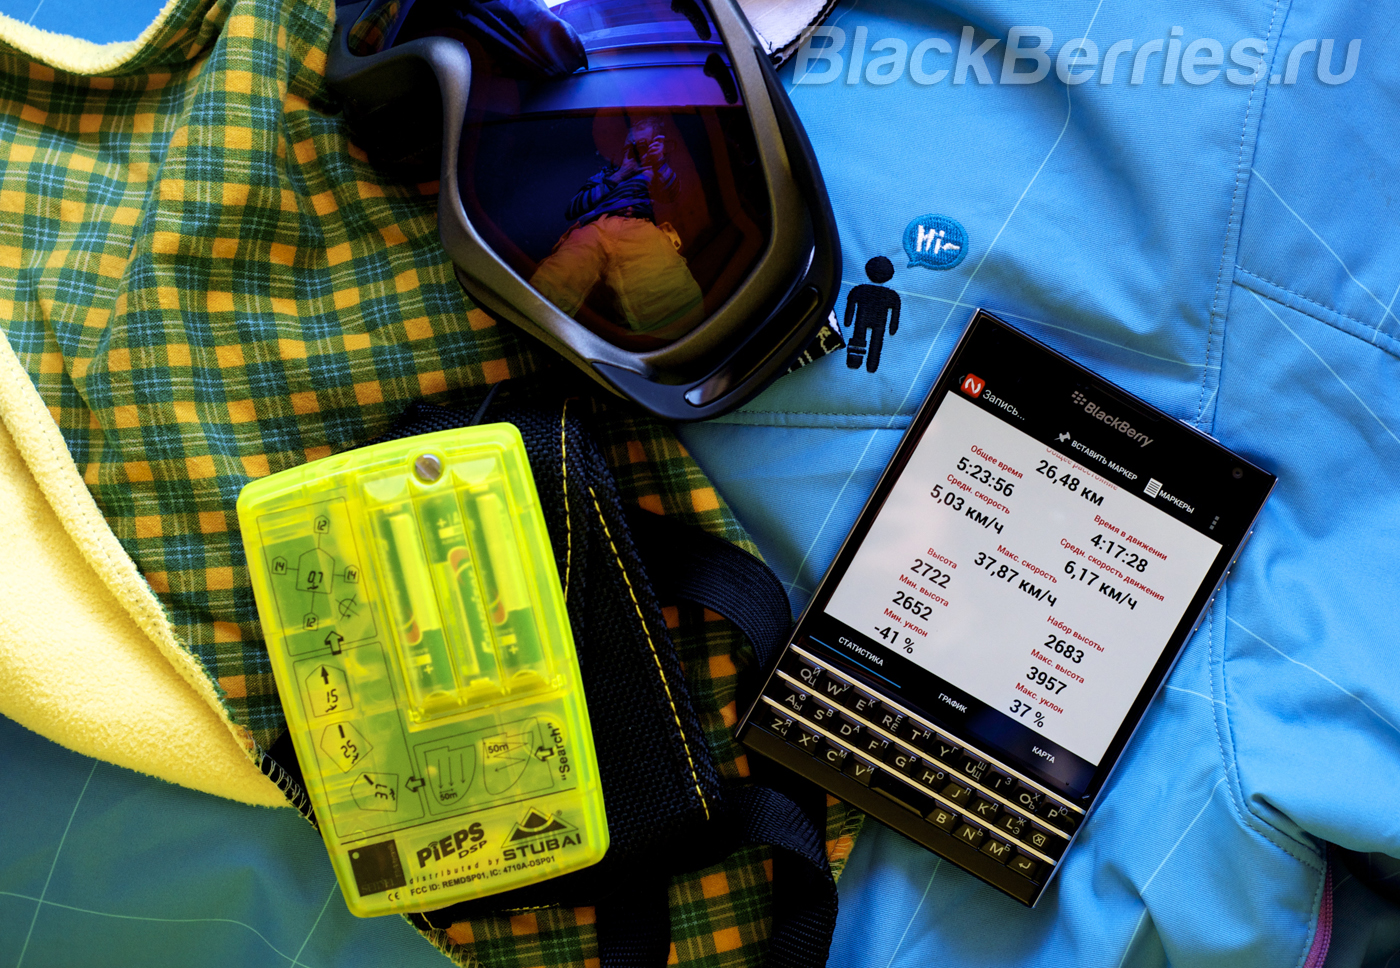 BlackBerry-Passport-NoGago-Tracks